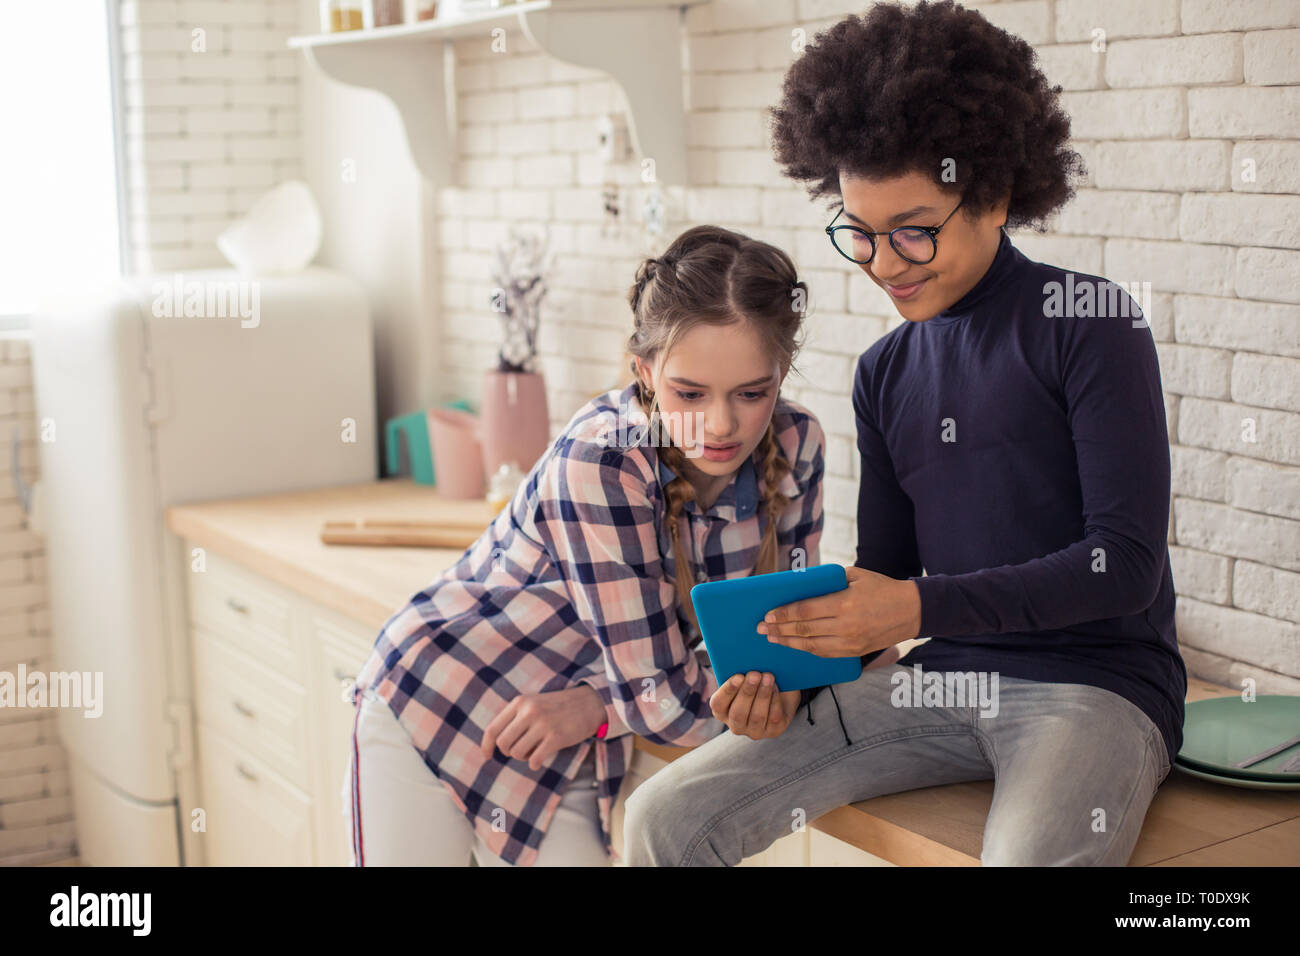 Attentive kids watching movie together on tablet - Stock Image